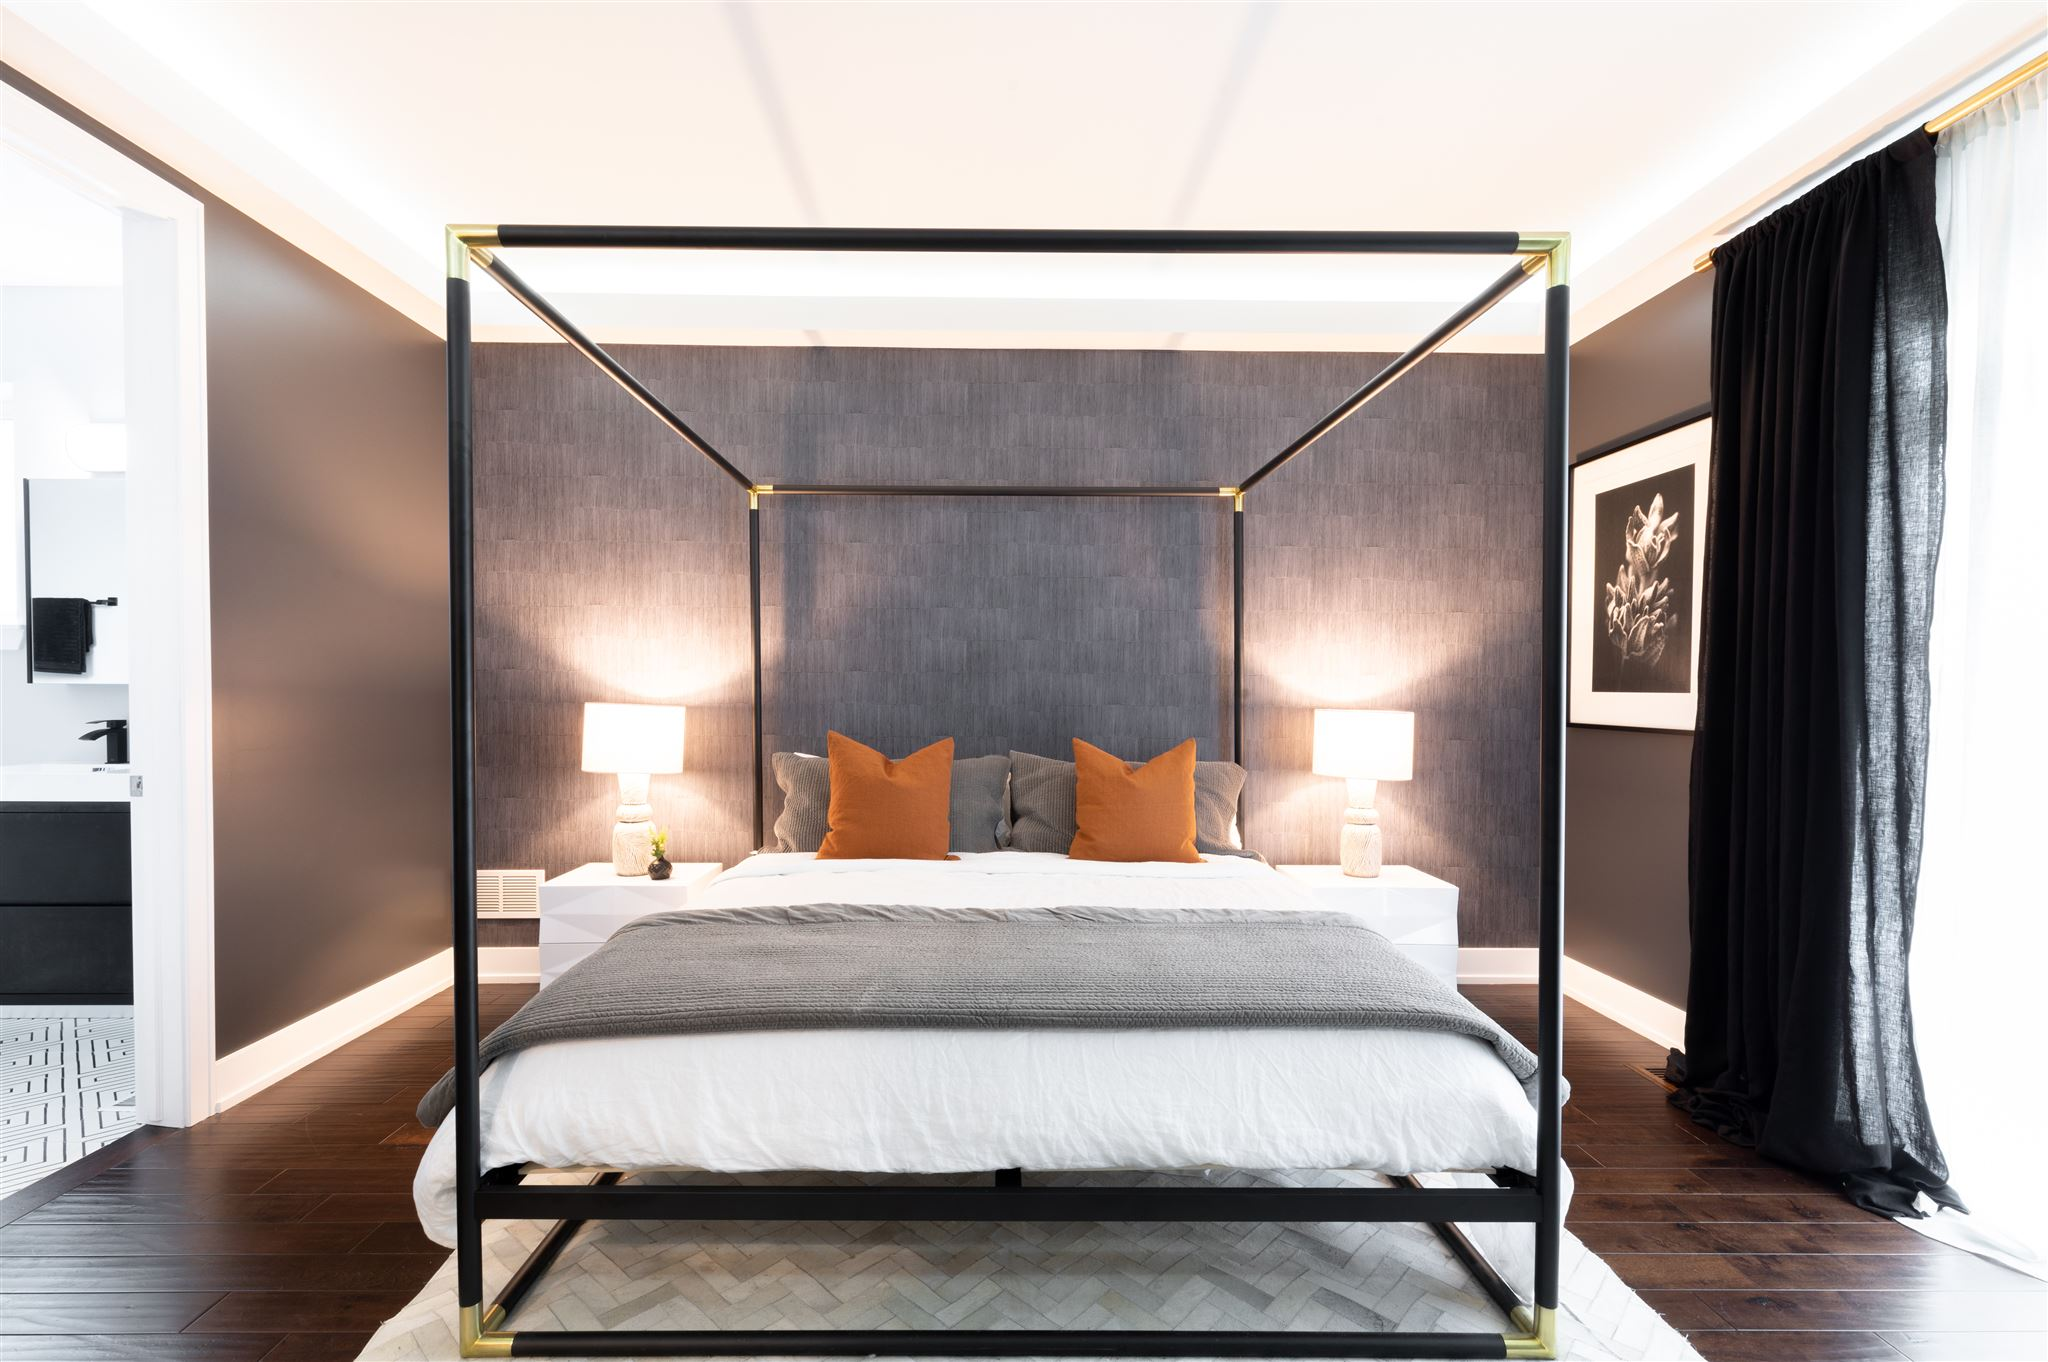 The master bedroom got a moody update as well with dark gray walls and a textured wallpaper behind the new canopy bed. Black and brass metals add a sharp contrast to the otherwise soft palette.